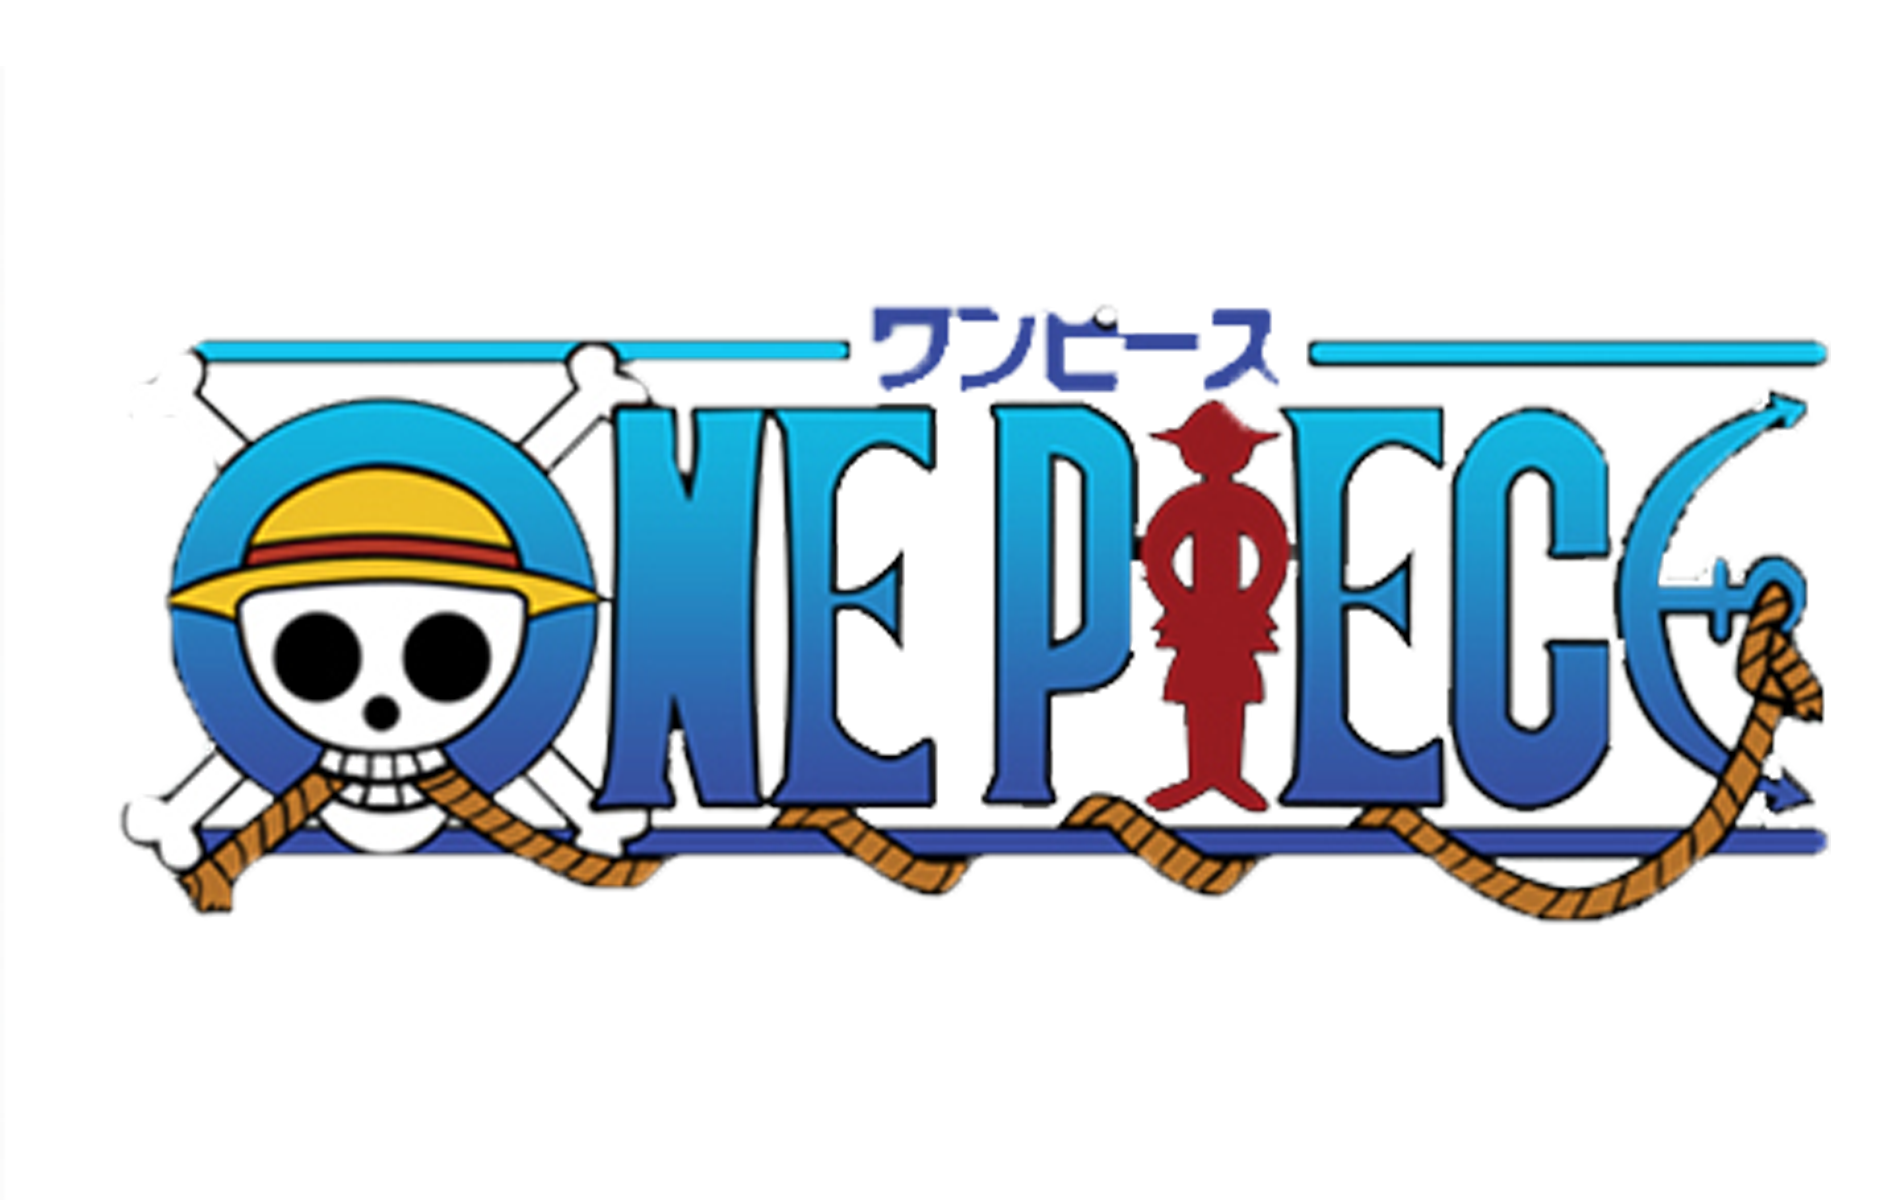 Wallpapers ID499934 Herunterladen Nachste Wallpaper Vorherige One Piece Logo